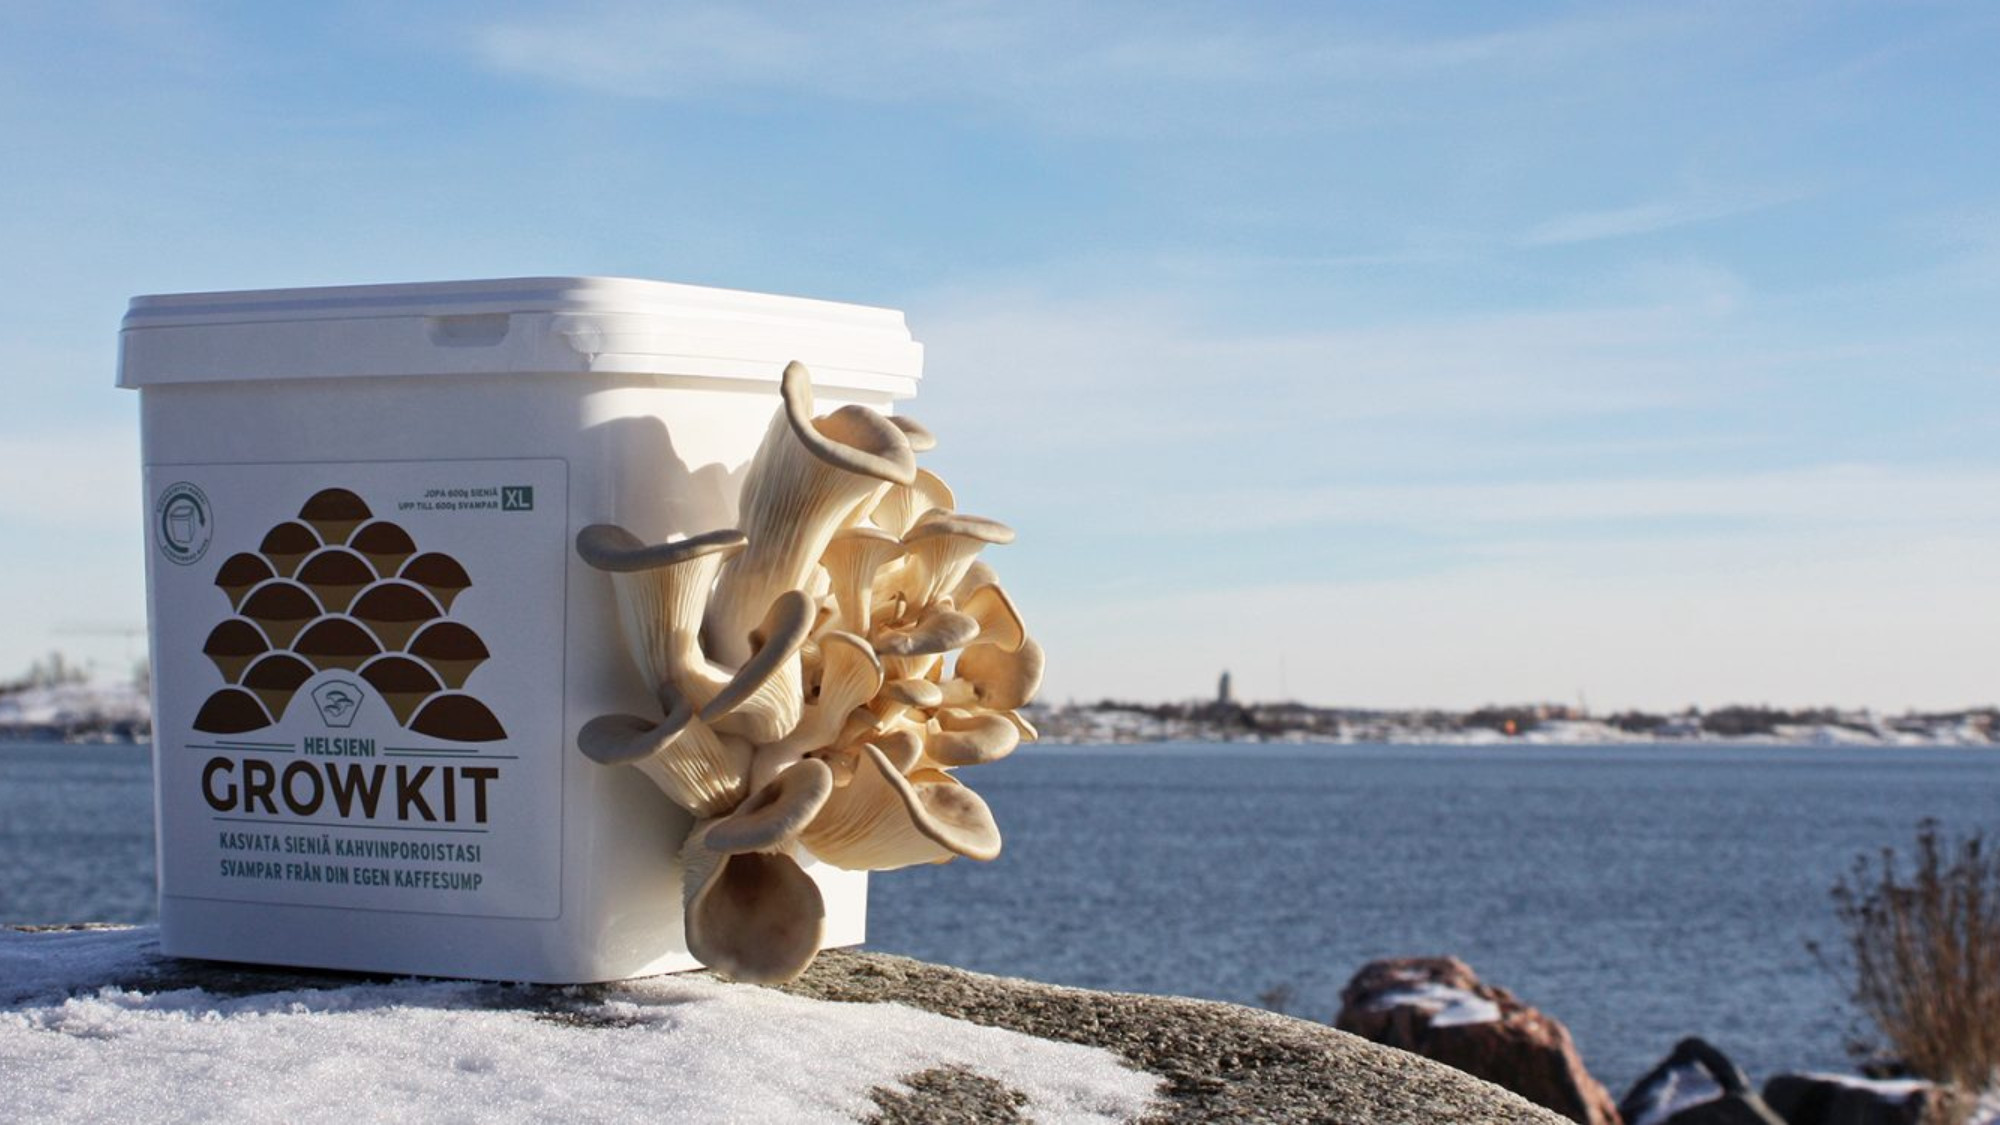 The name Helsieni is a pun: the company is based in Helsinki, and 'sieni' means mushroom in Finnish.